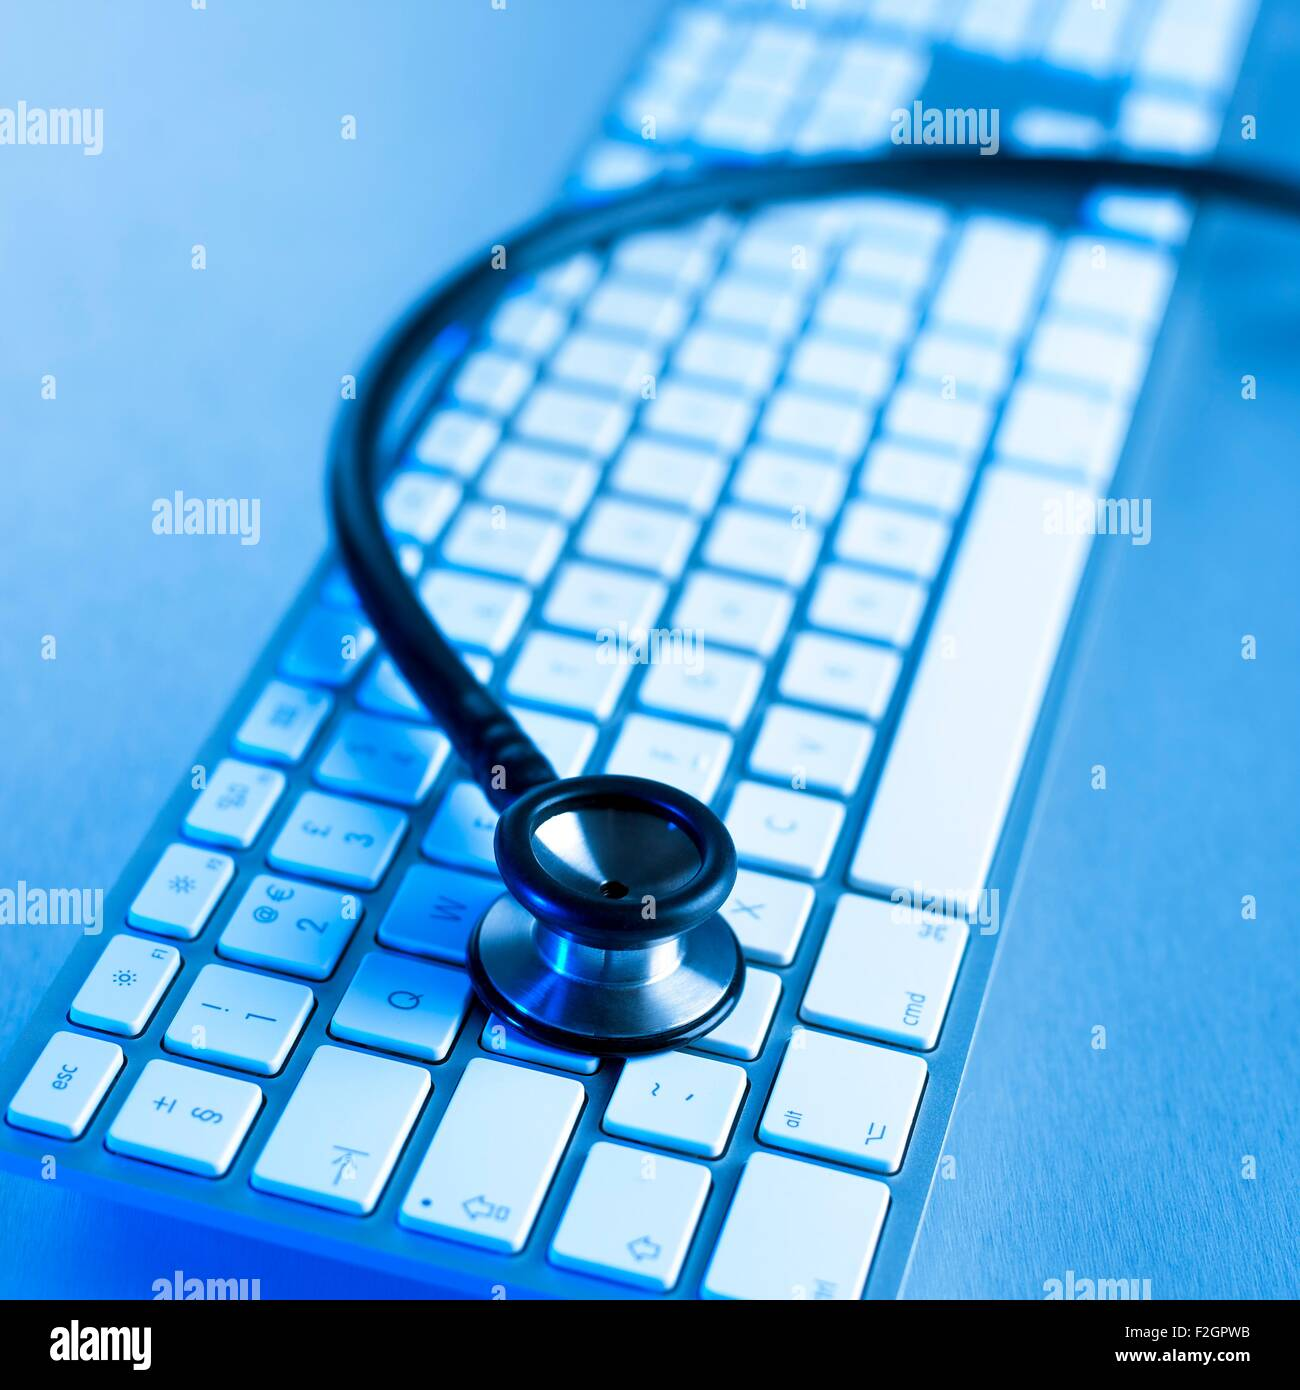 Computer keyboard and stethoscope - Stock Image